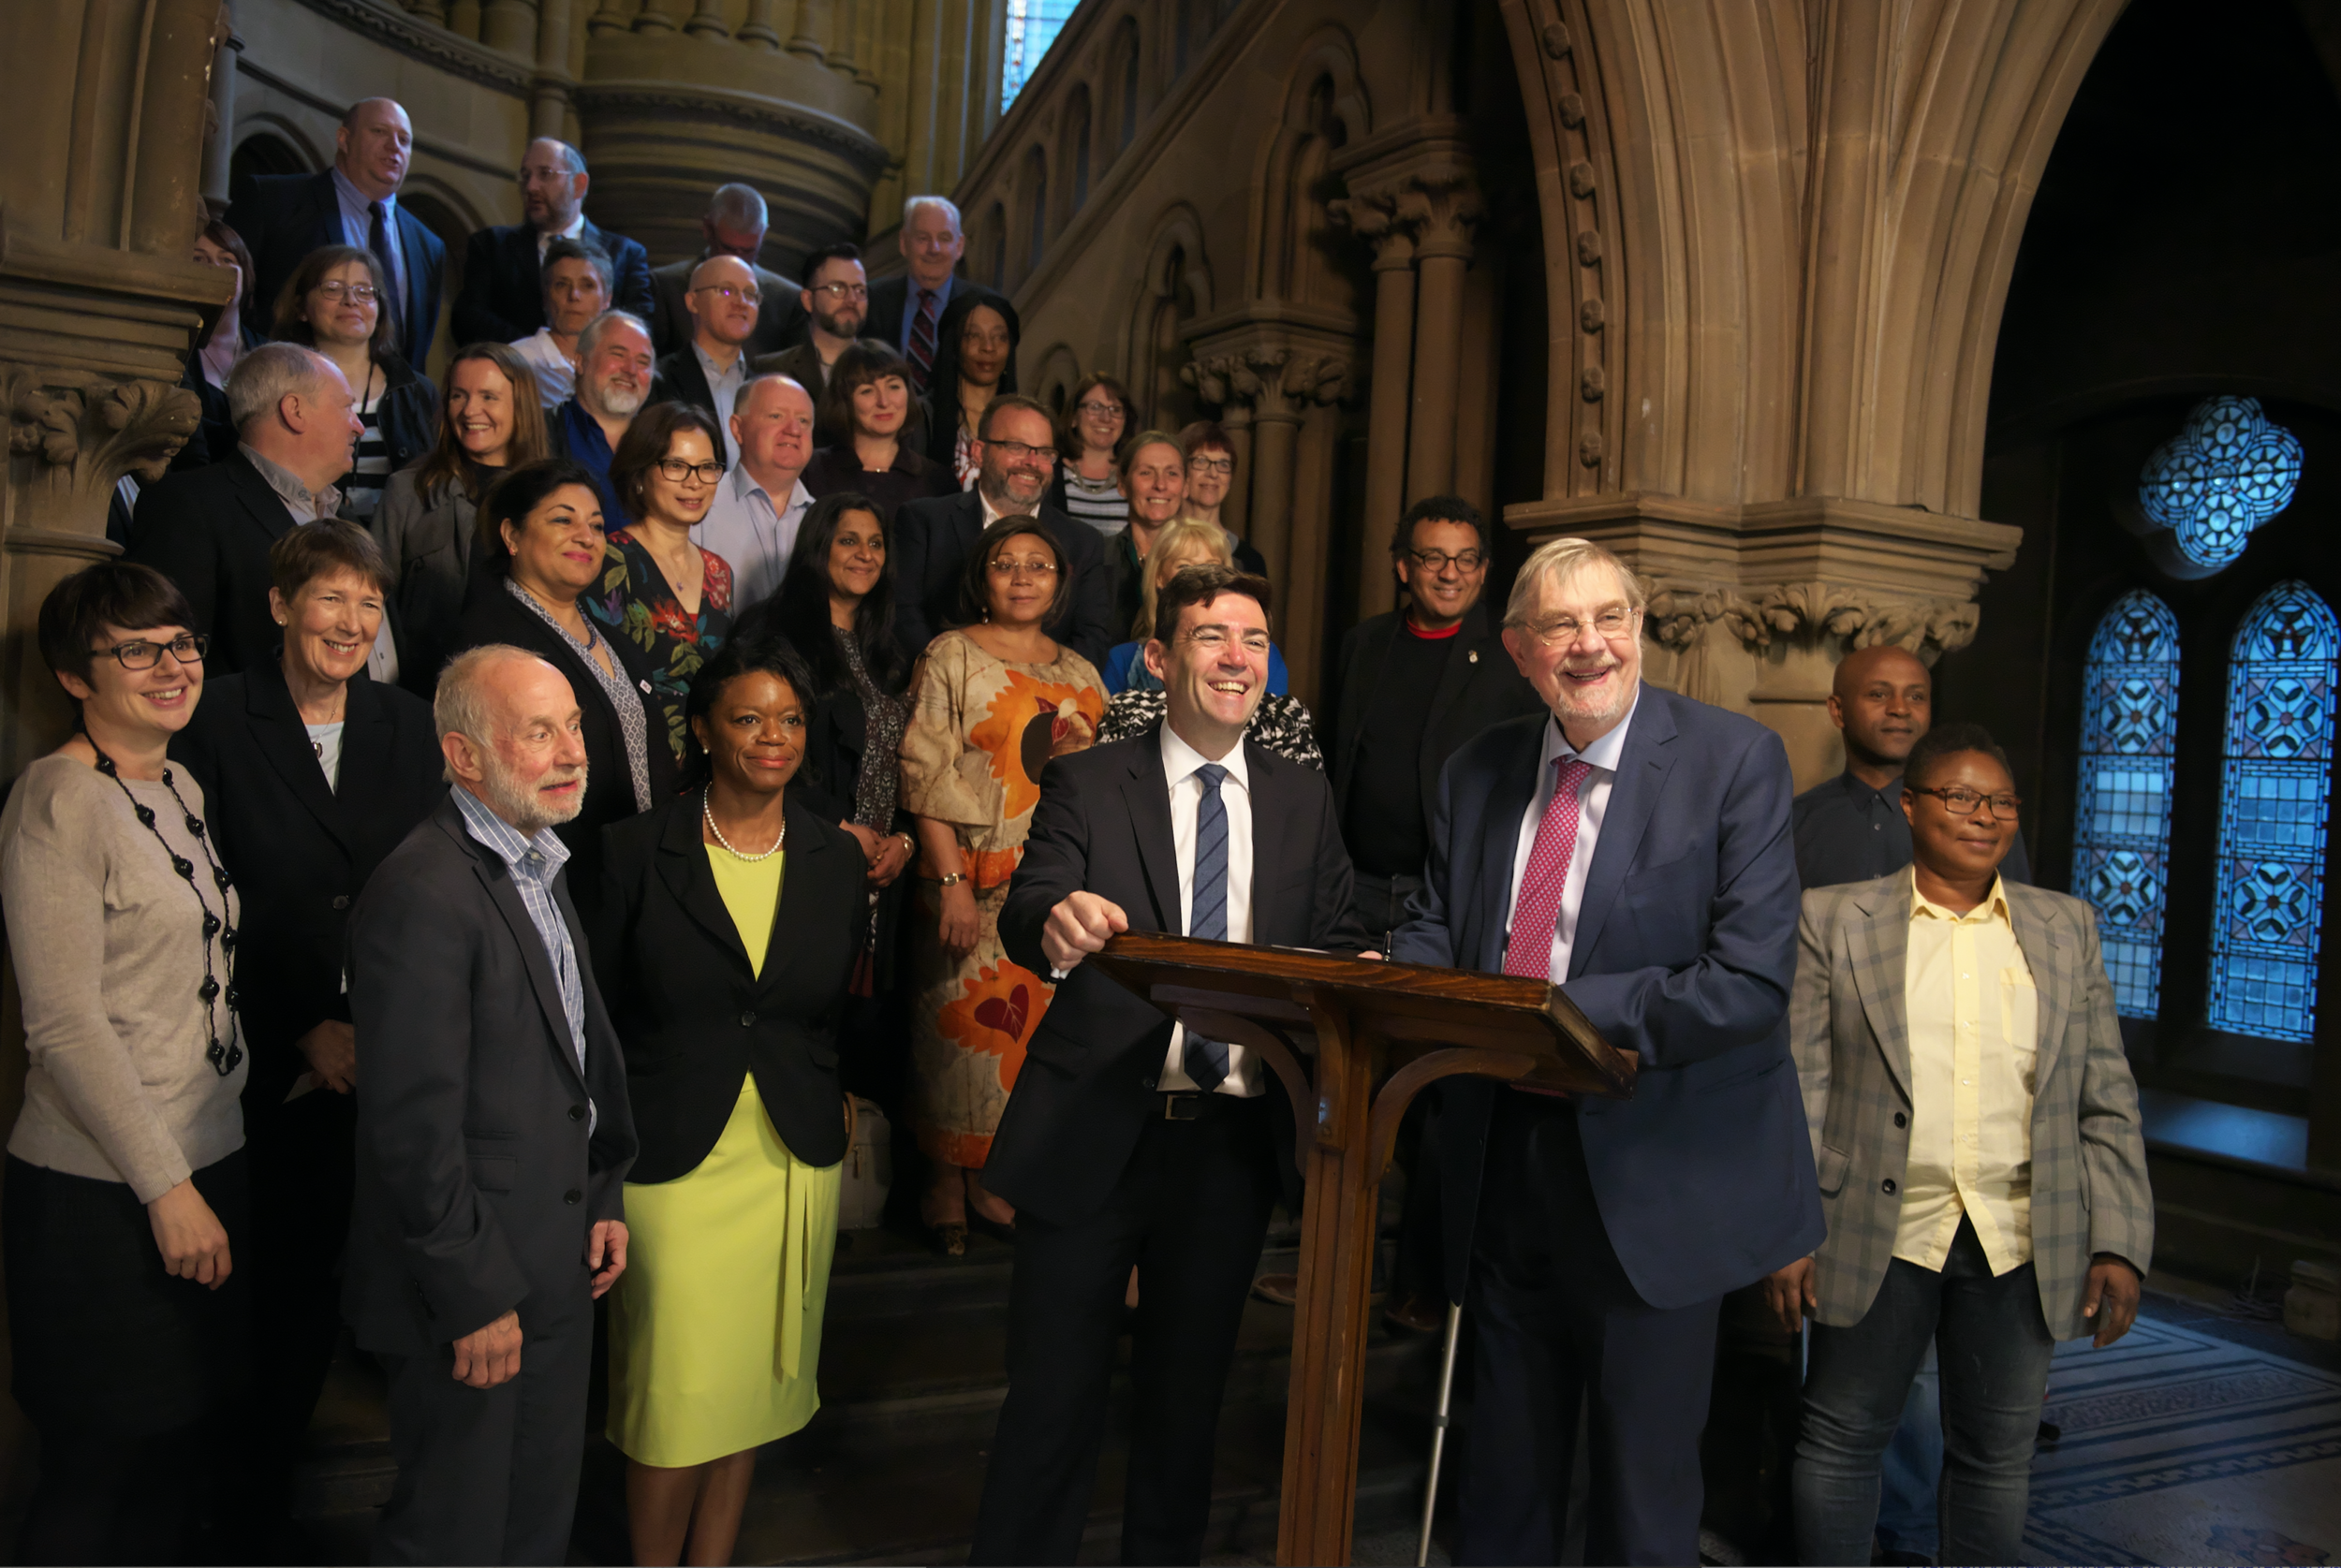 The VCSE MoU signing at Manchester Town Hall with Andy Burnham and Lord Peter Smith